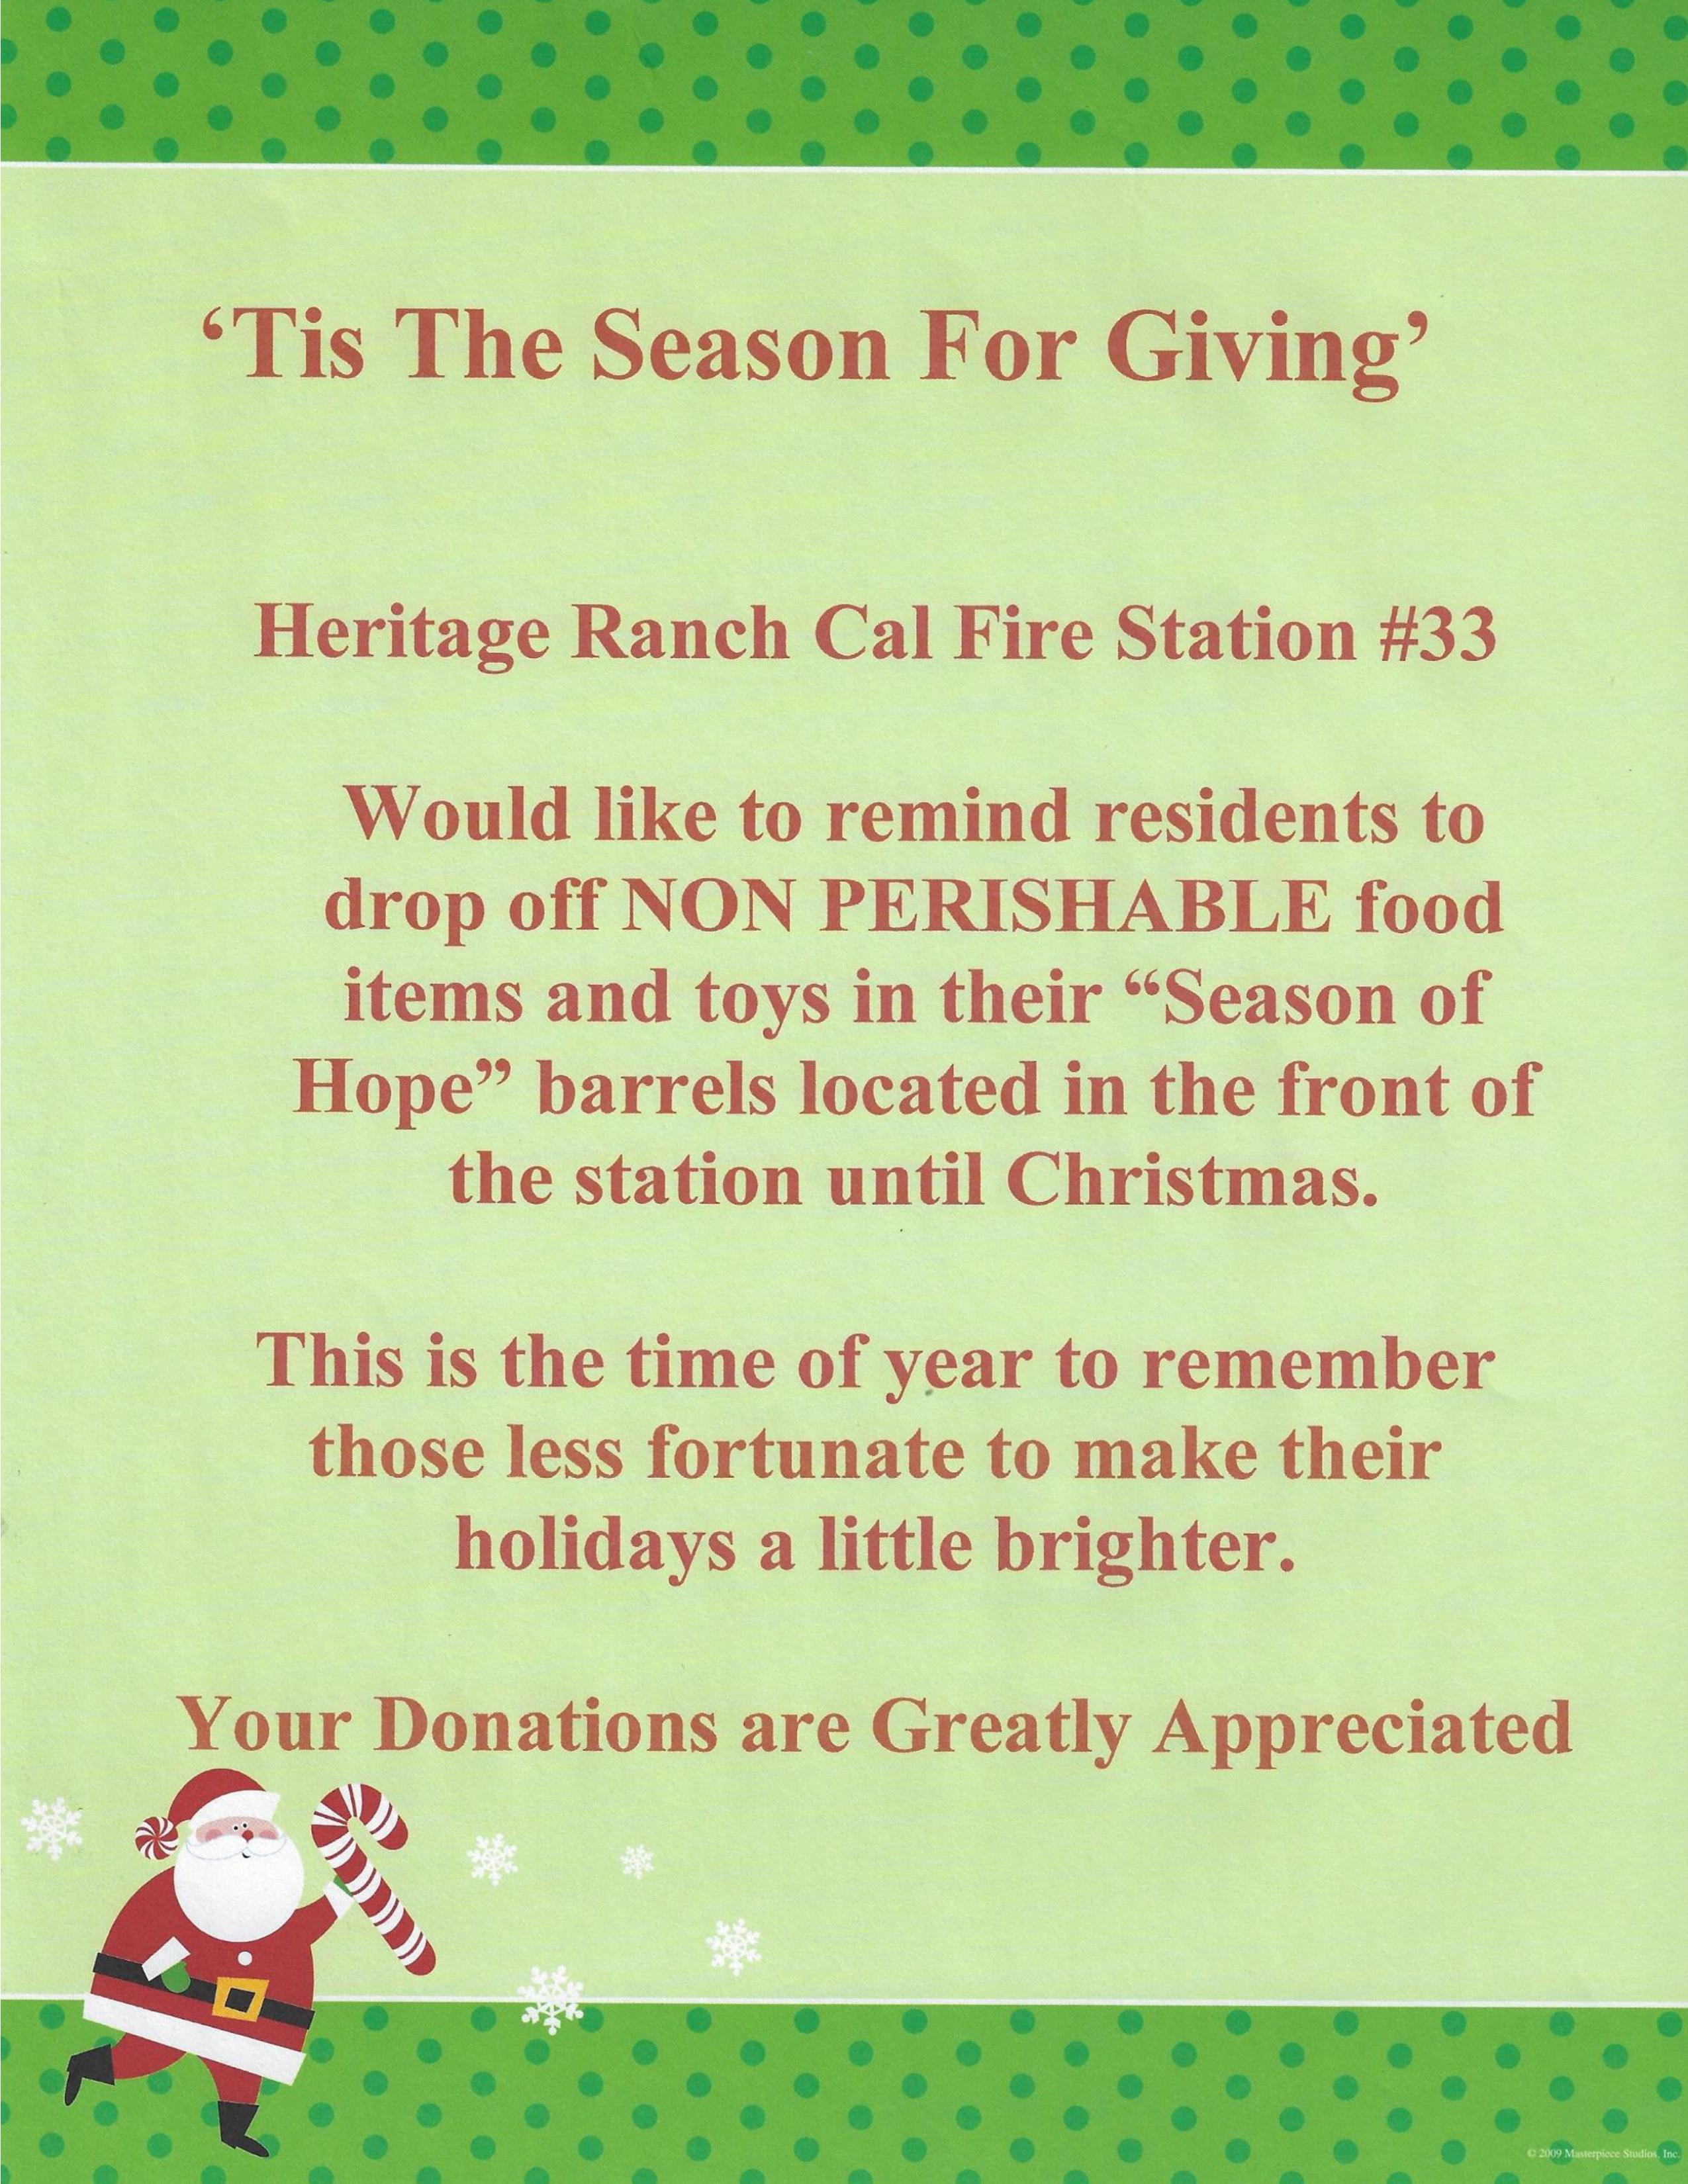 Cal Fire Food Drive 2020 - Drop off food at the Cal Fire Station #33